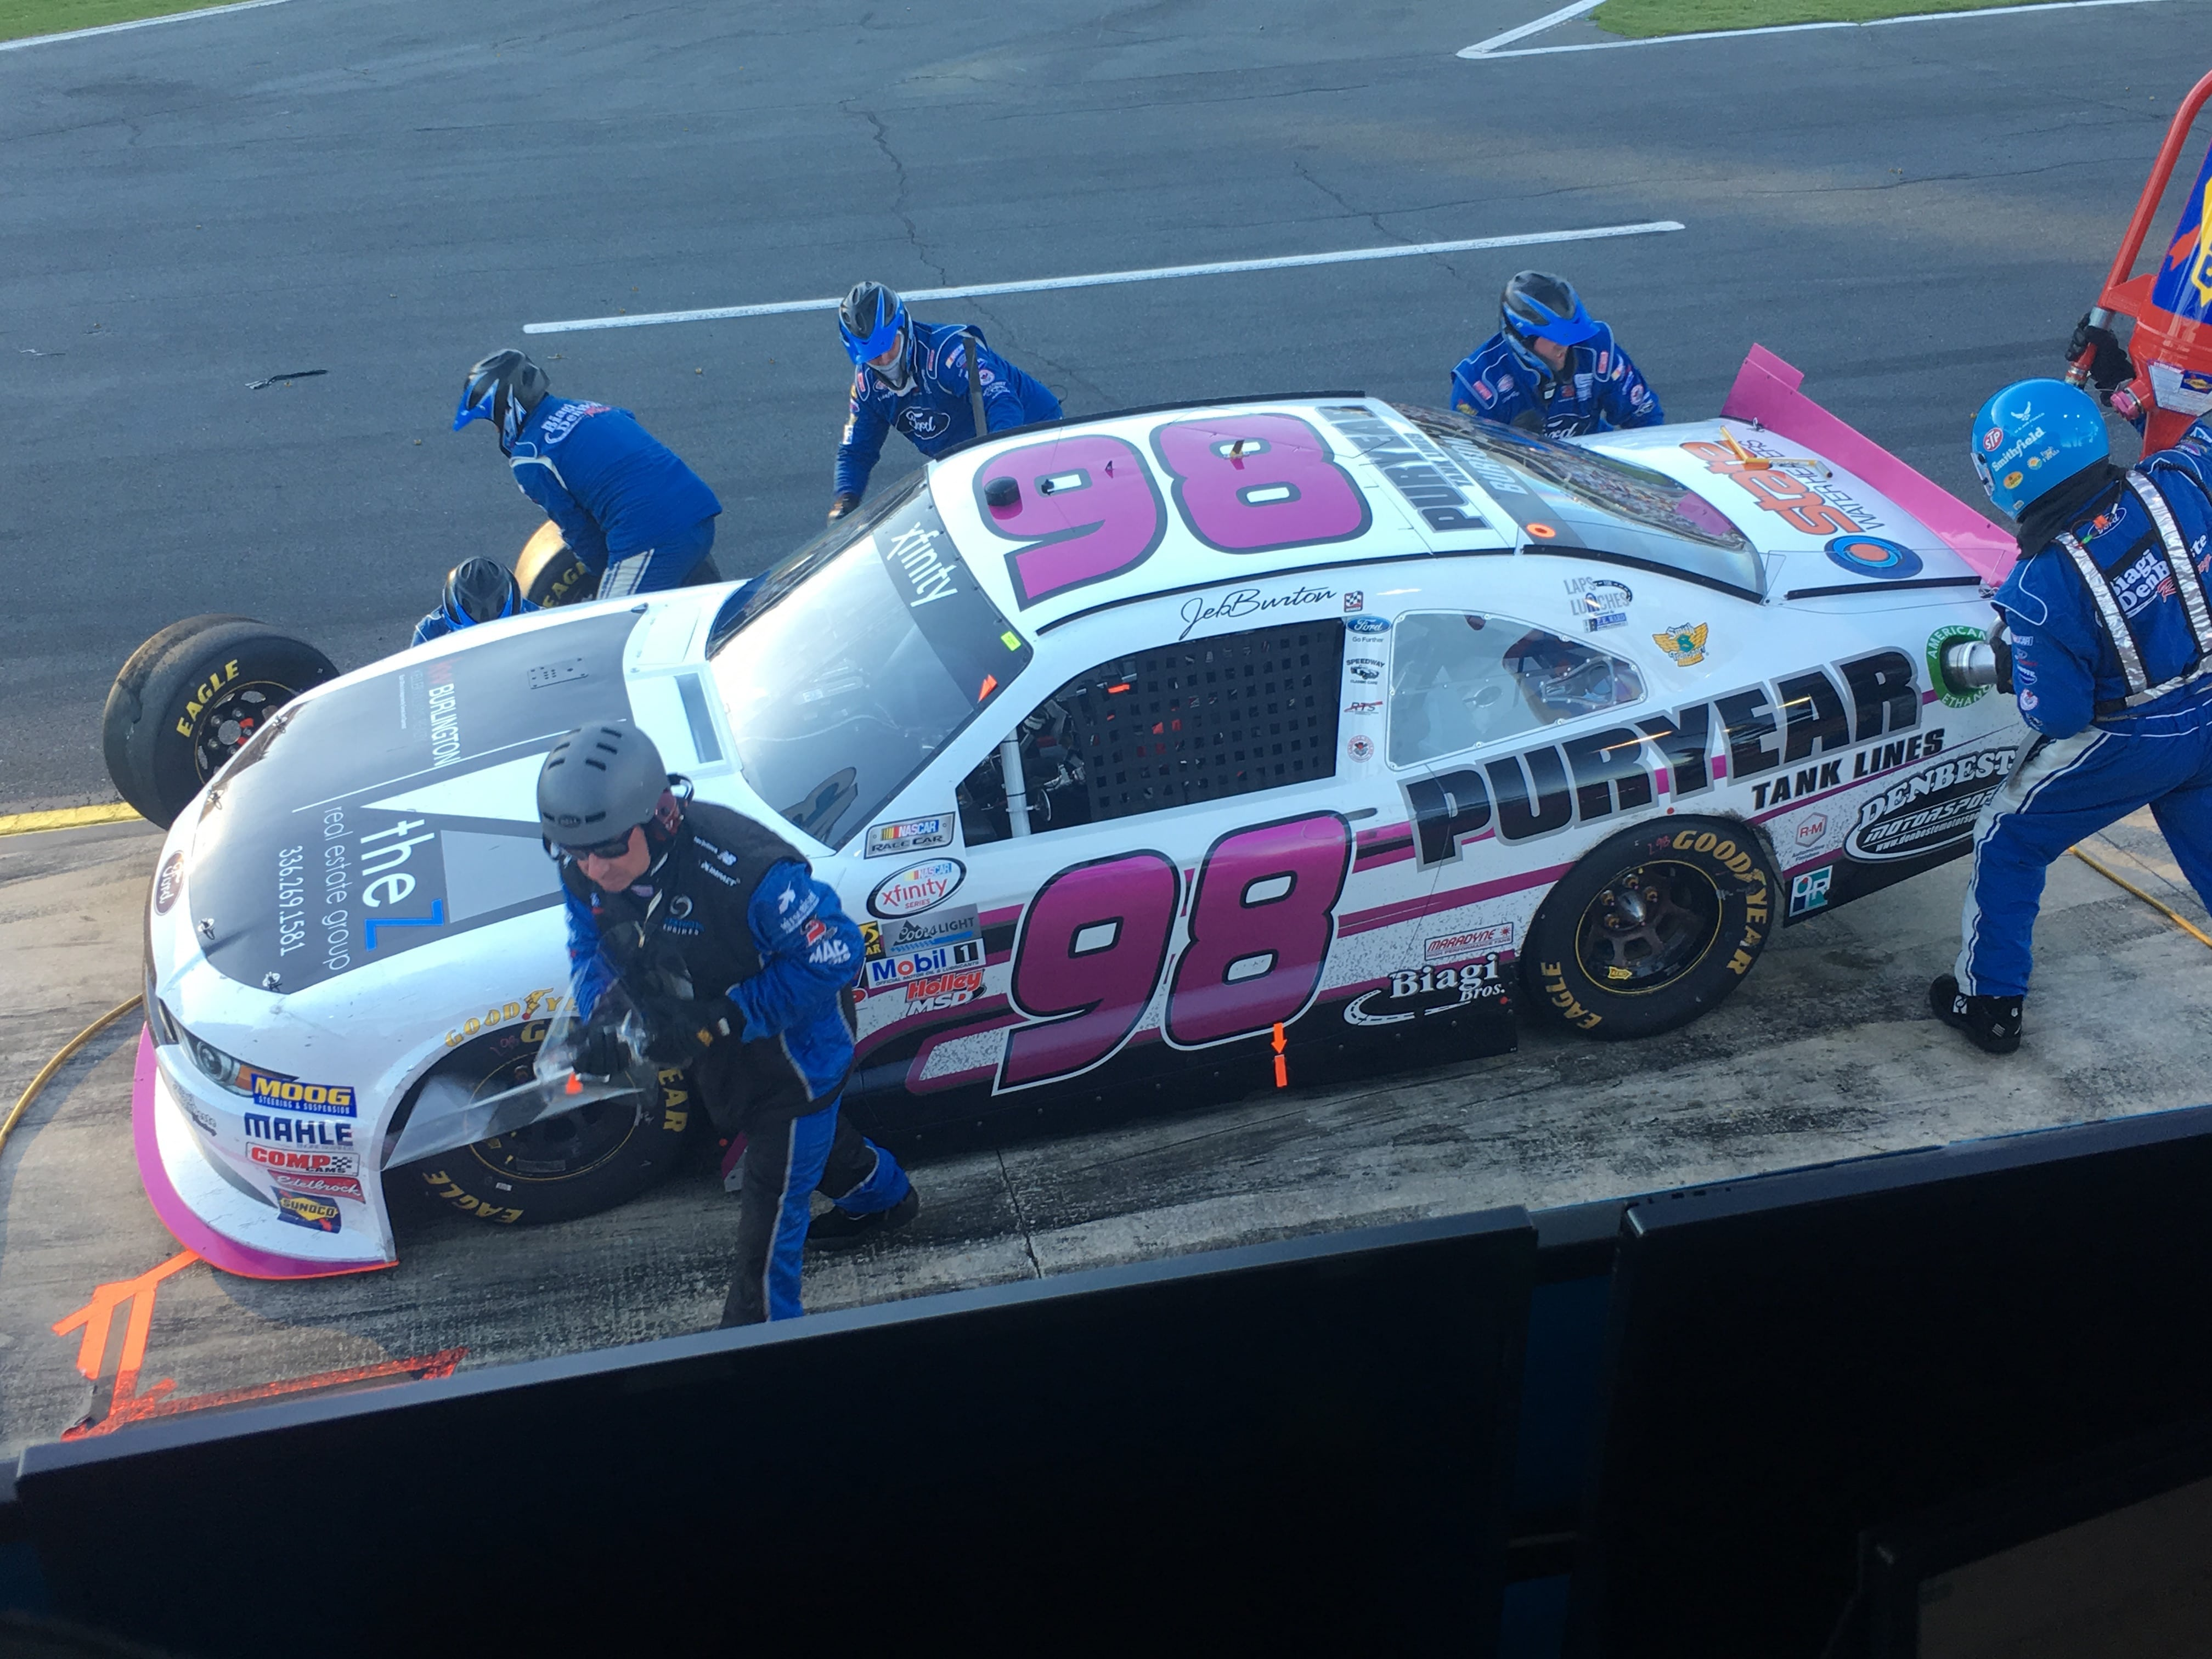 Columbus Movers Sponsor NASCAR Race for the Cure 300